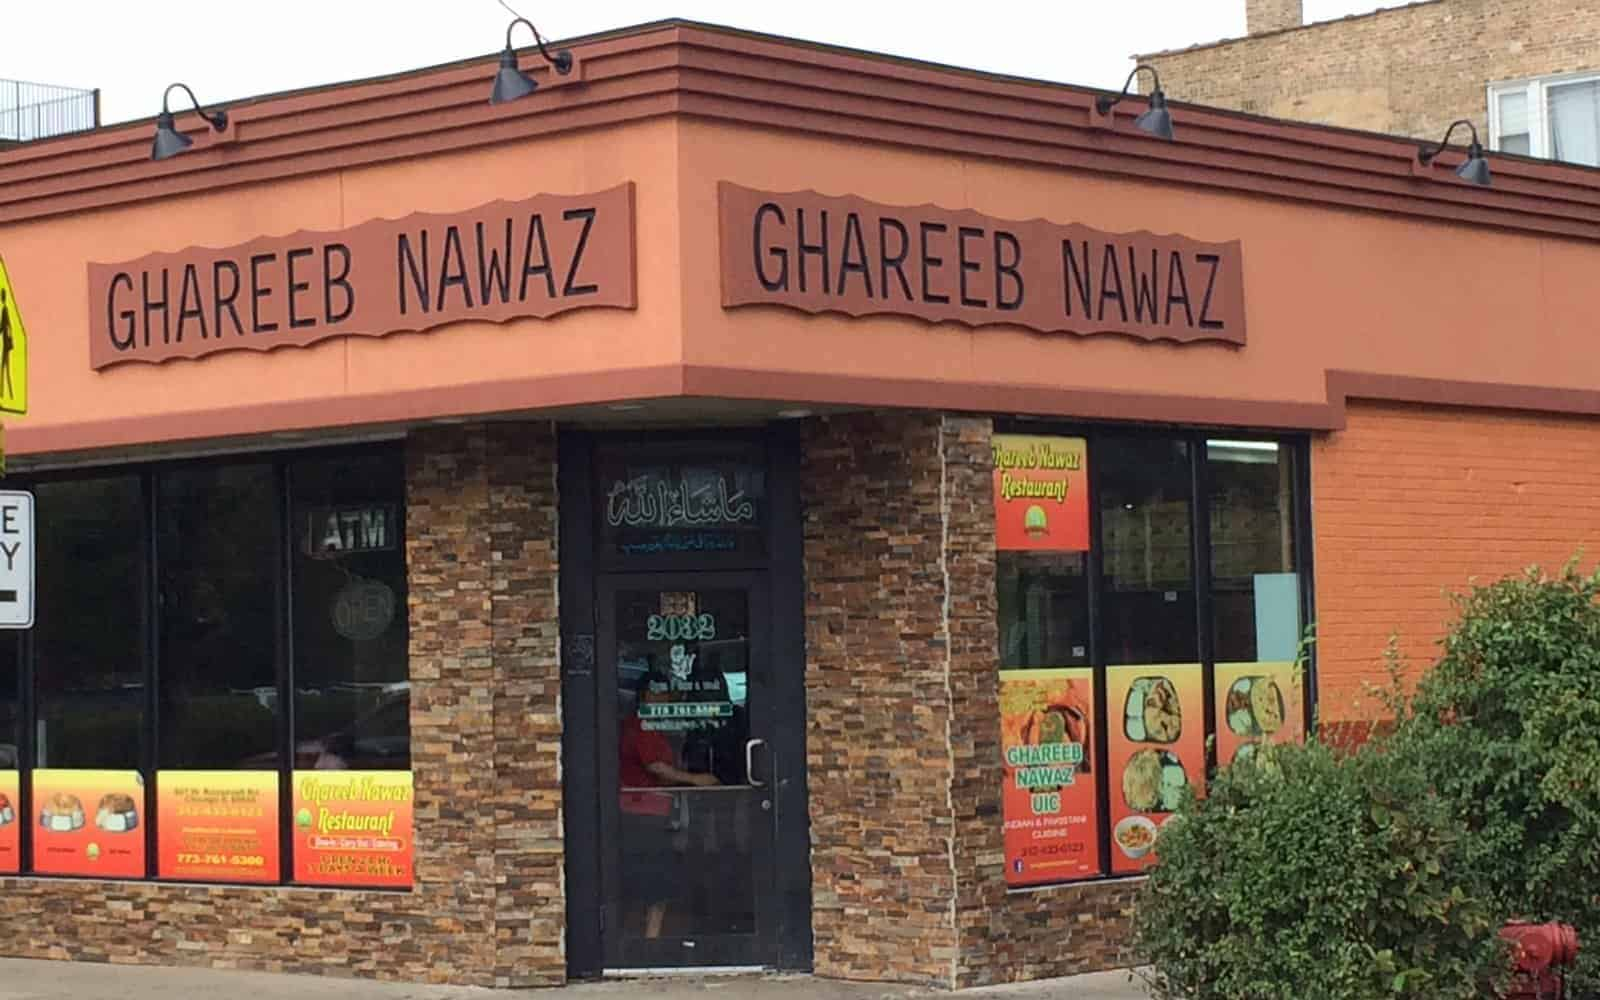 Ghareeb nawaz restaurant best value kitchen for indian and ghareeb nawaz restaurant best value kitchen for indian and pakistani dining carry out and full catering altavistaventures Images